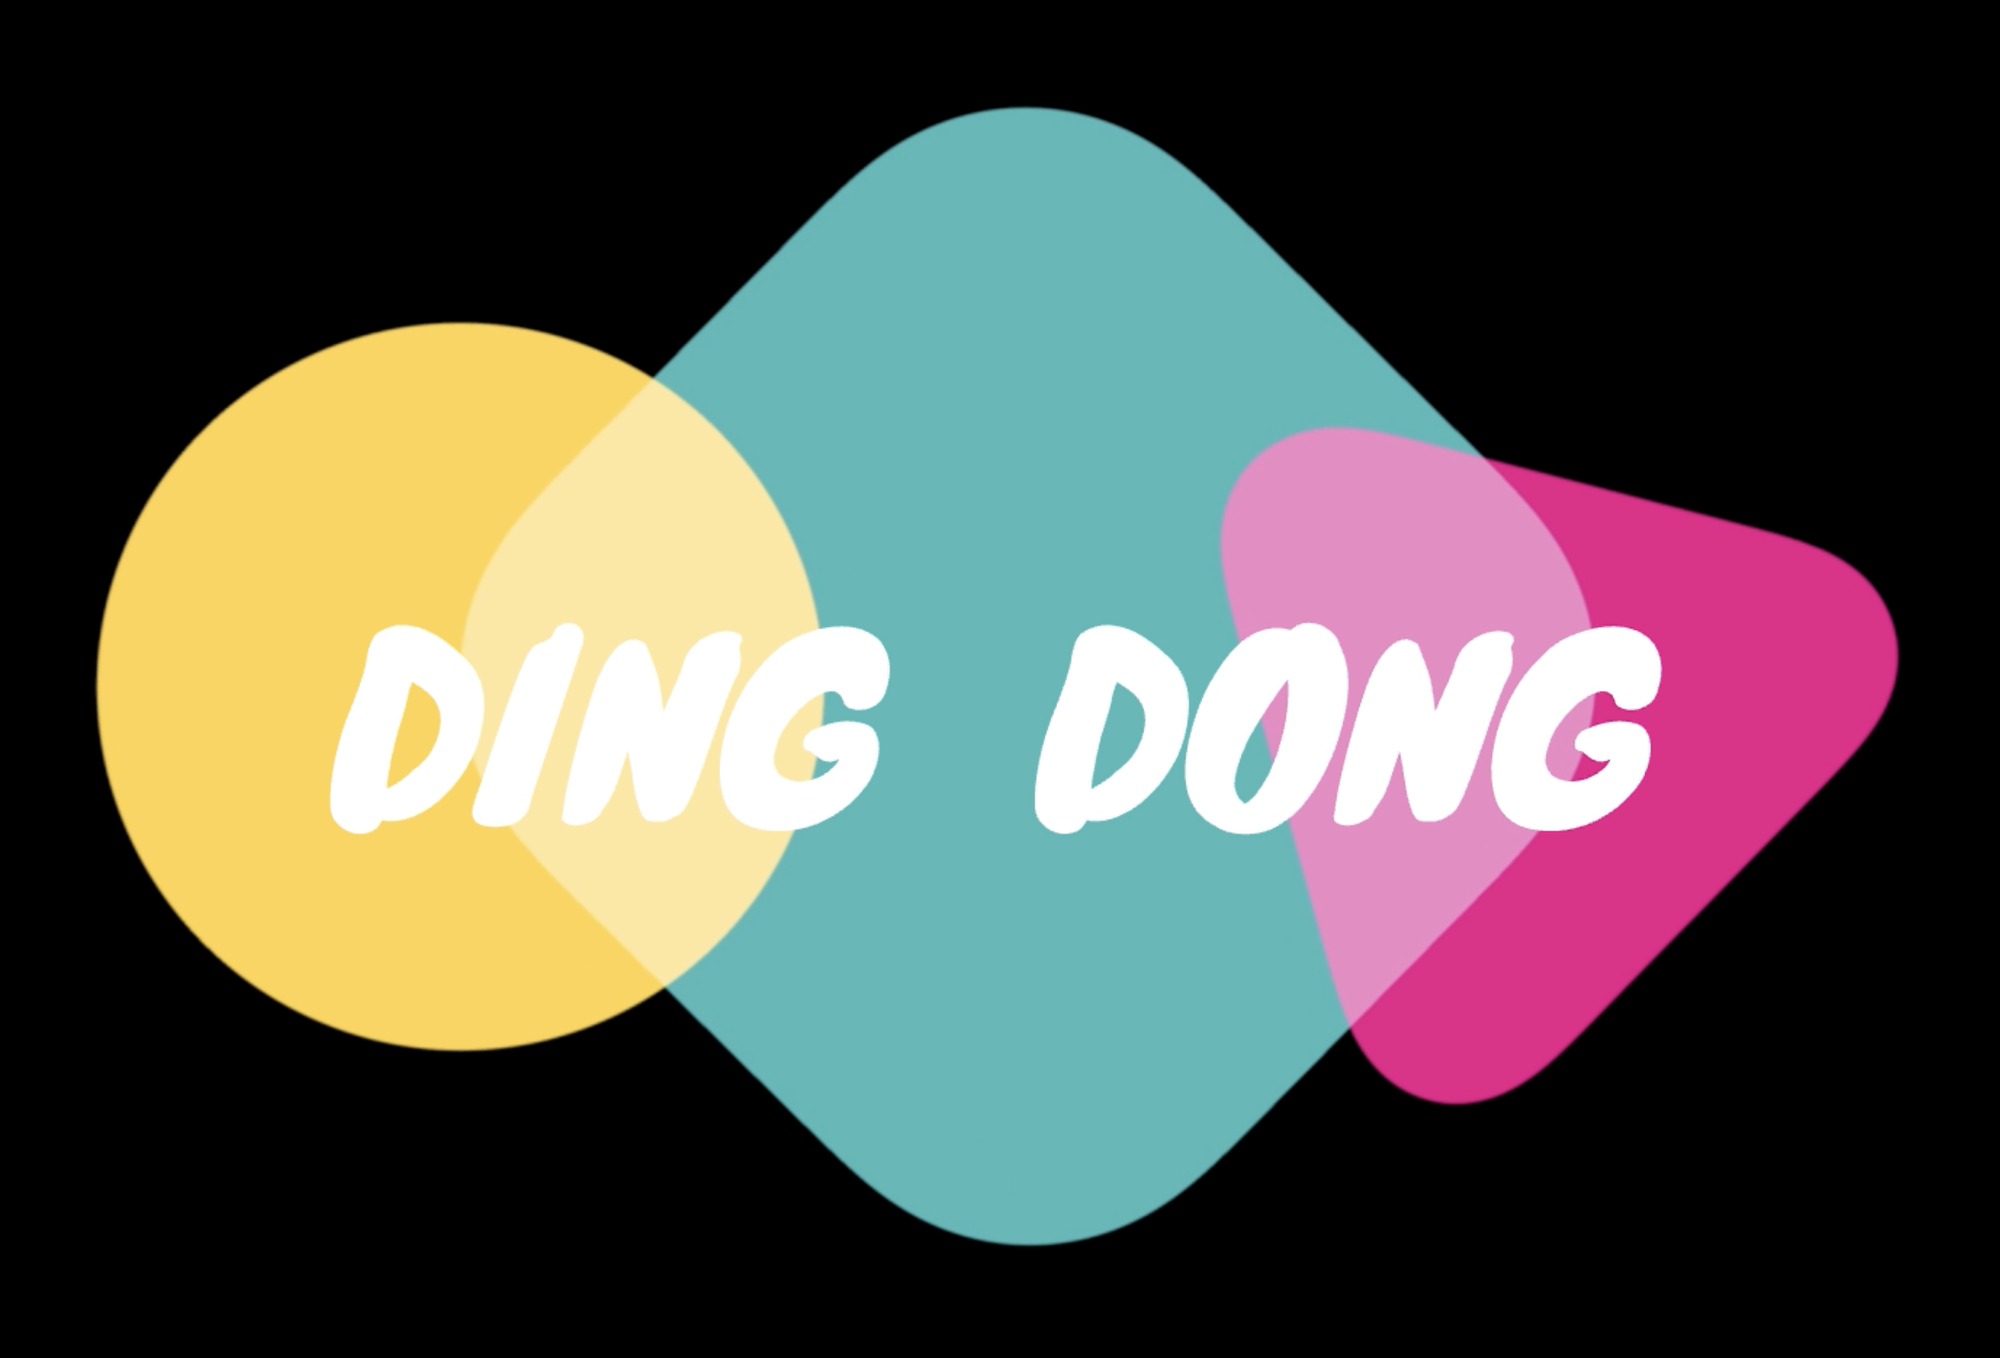 Ding Dong - The Cool Tubes - 2021 © The Cool Tubes